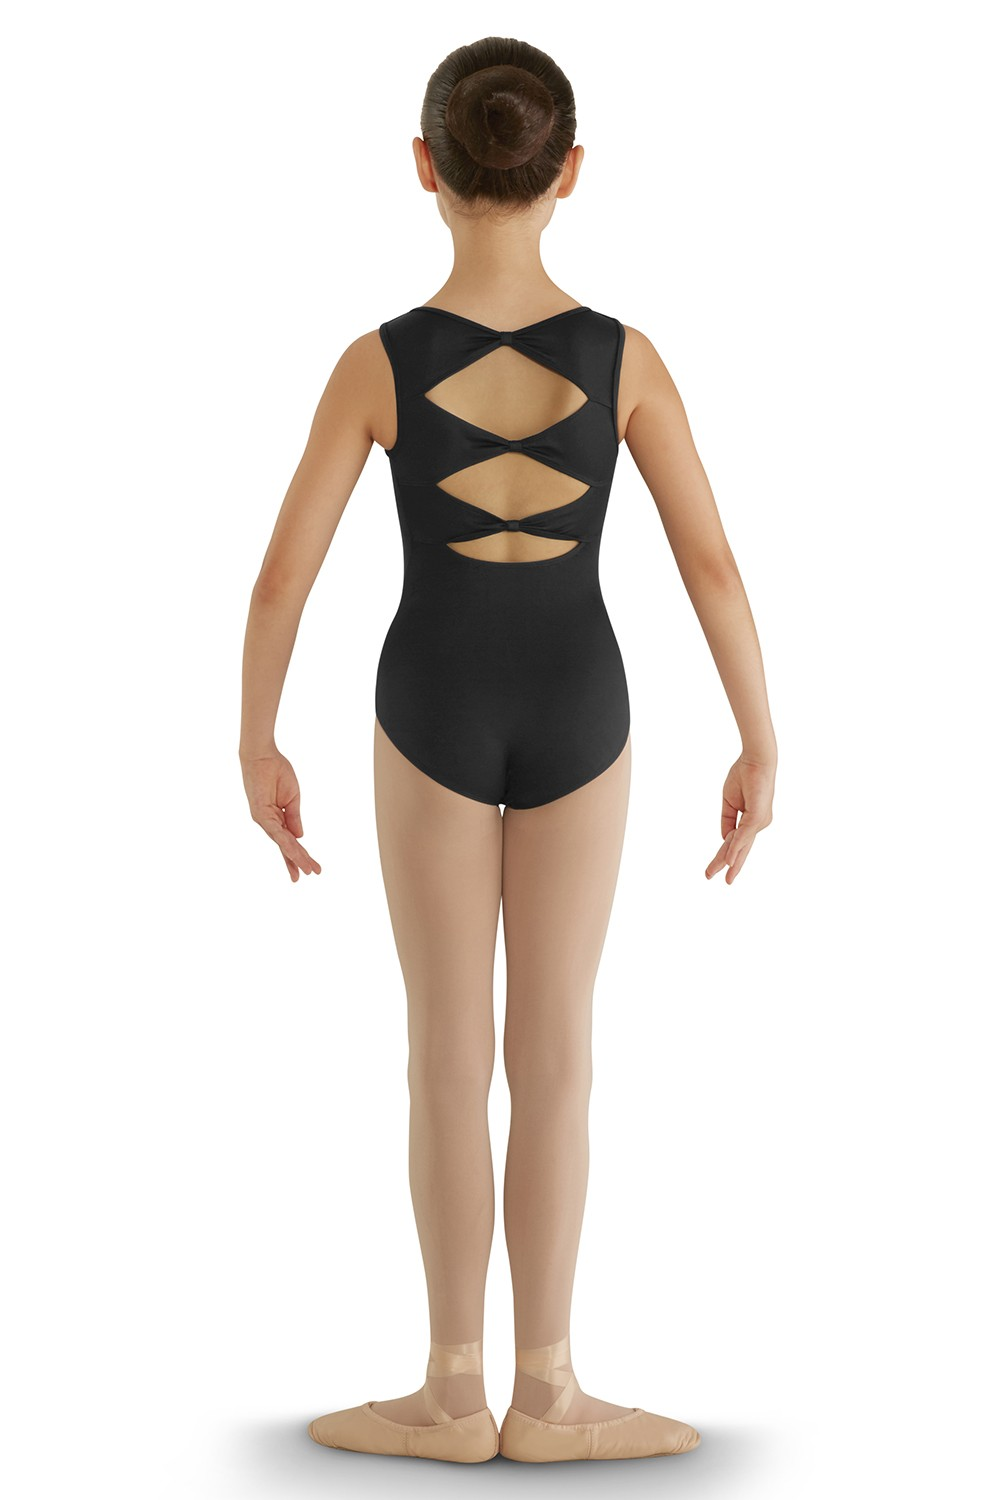 Gladiolus Children's Dance Leotards